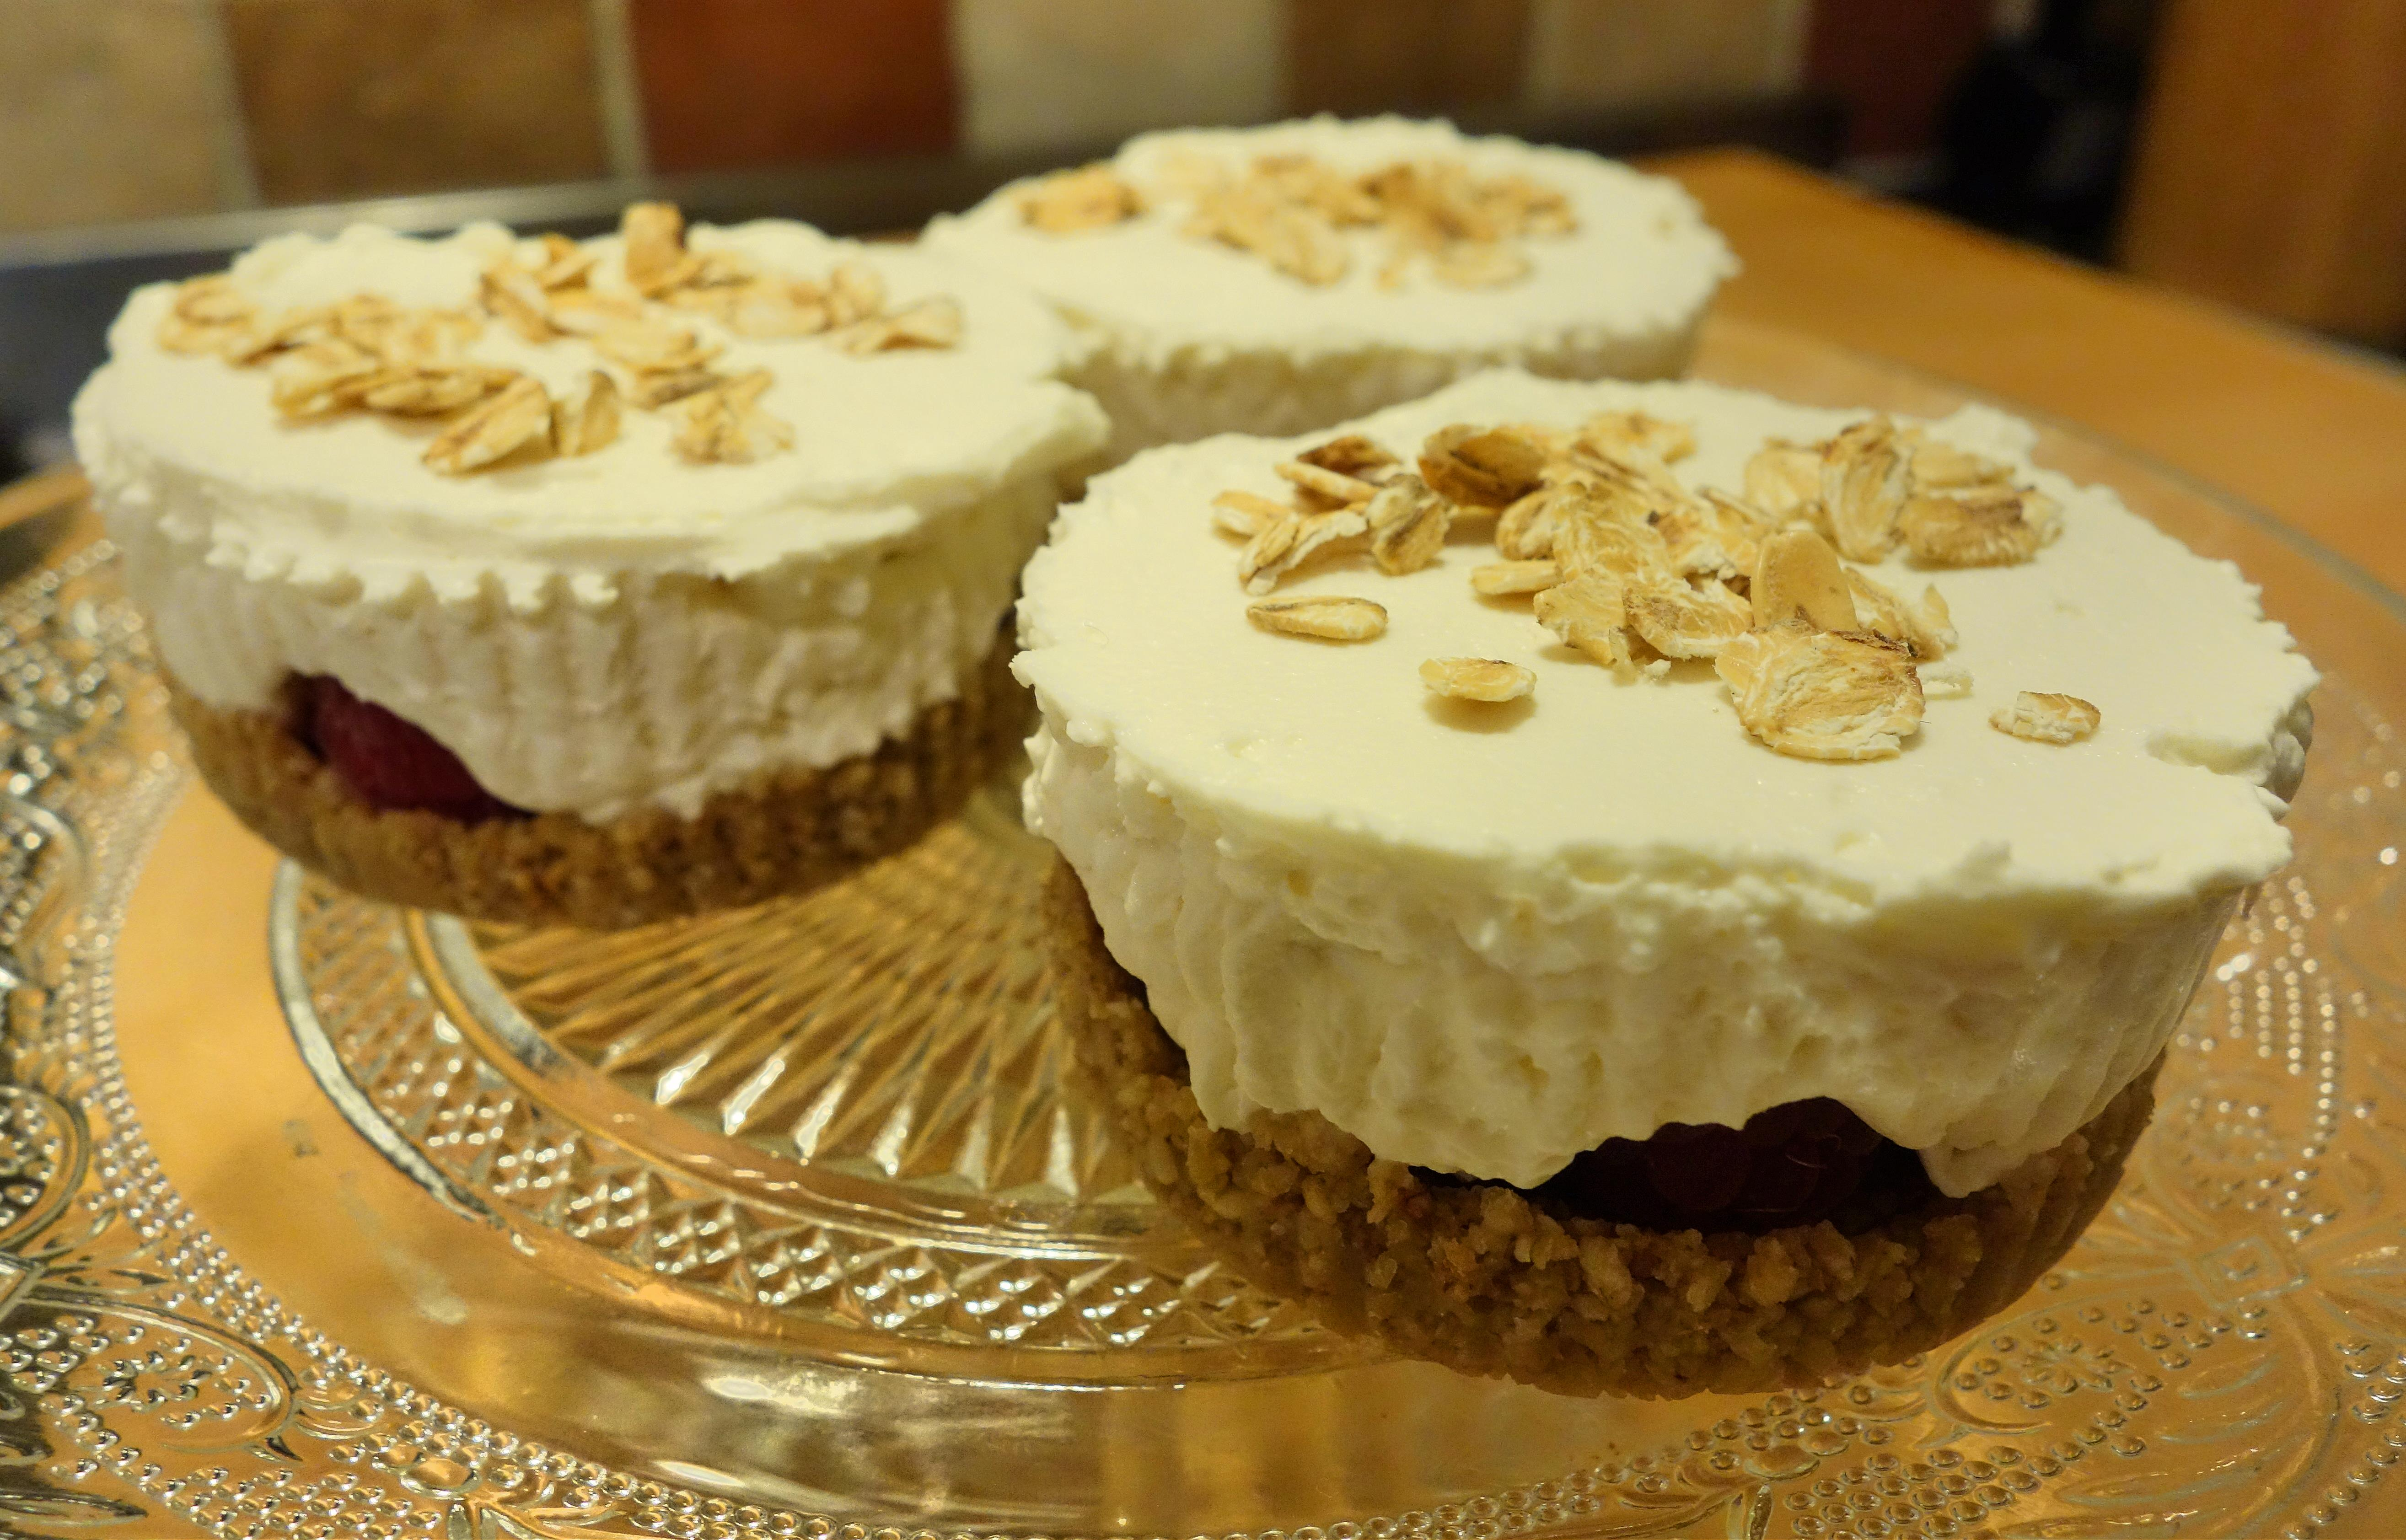 ... cheesecakes with some of the toasted oats and serve with some